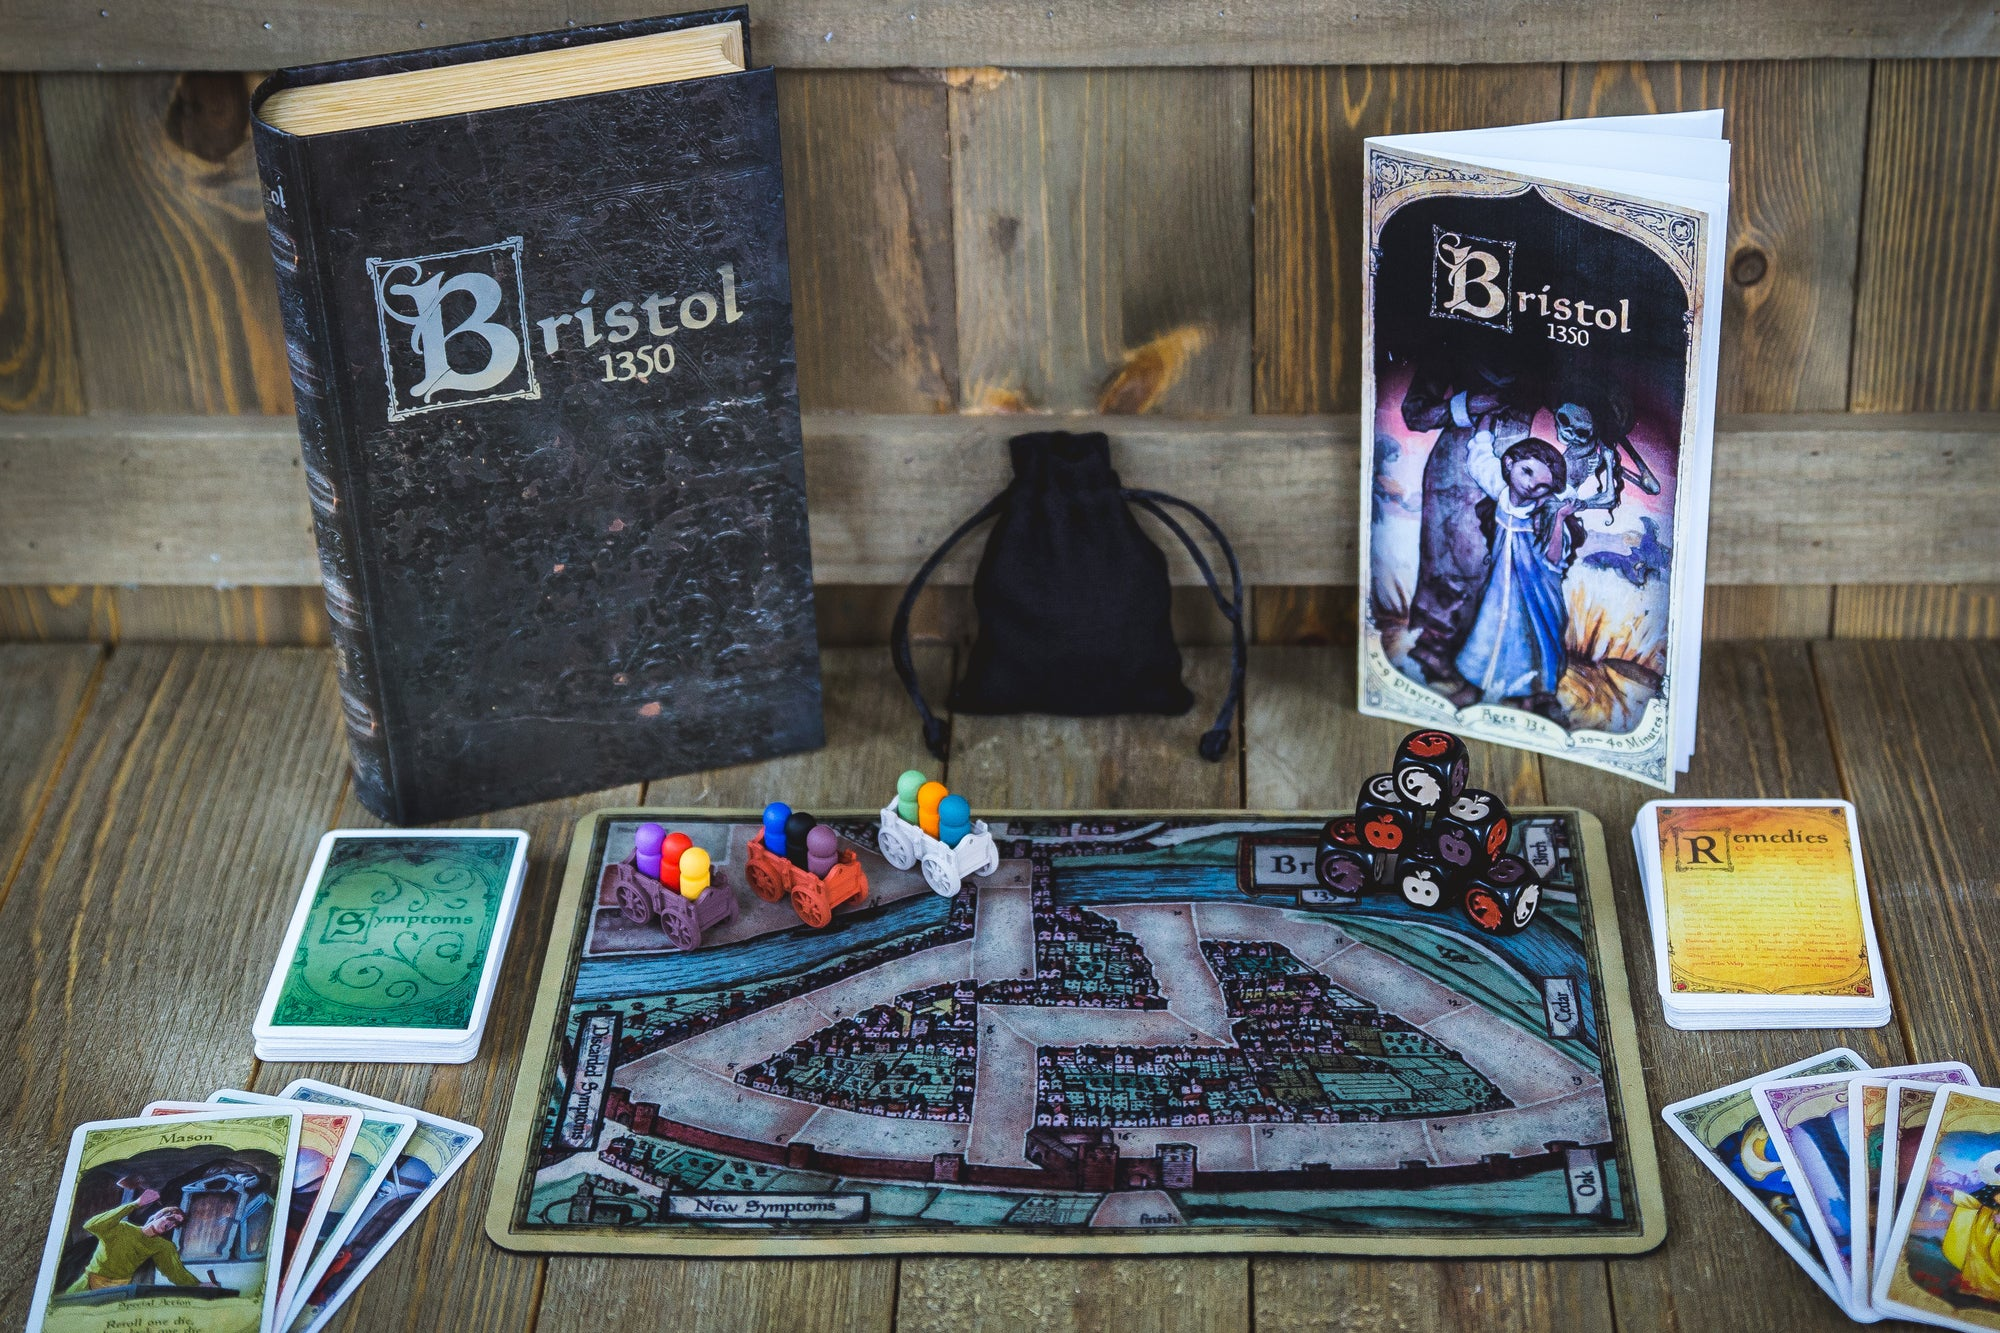 Bristol 1350 Launches on Kickstarter May 26th!